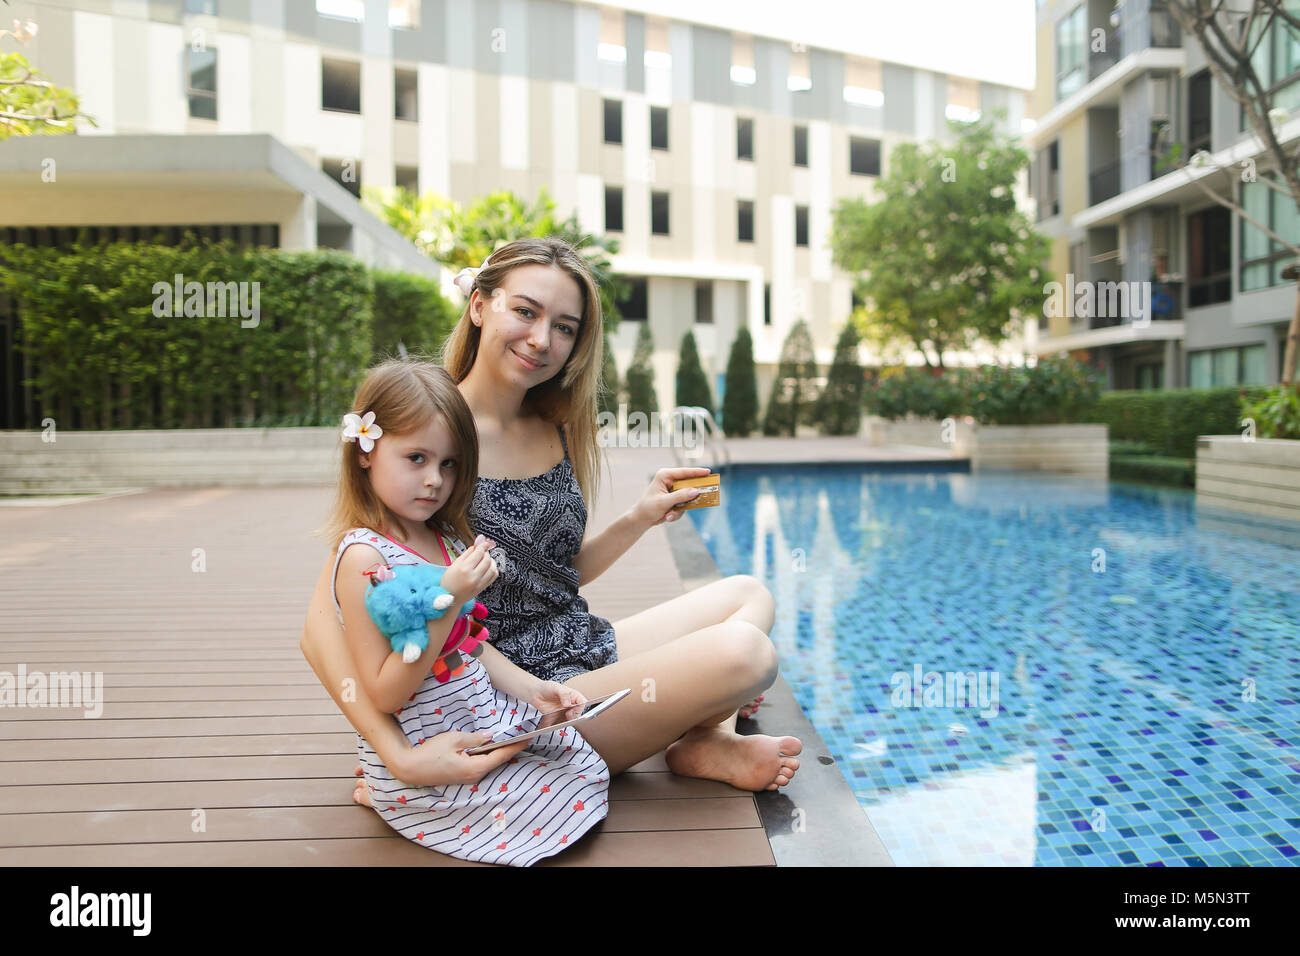 Mother daughter near swimming pool stock photos mother for Mother daughter vacation destinations